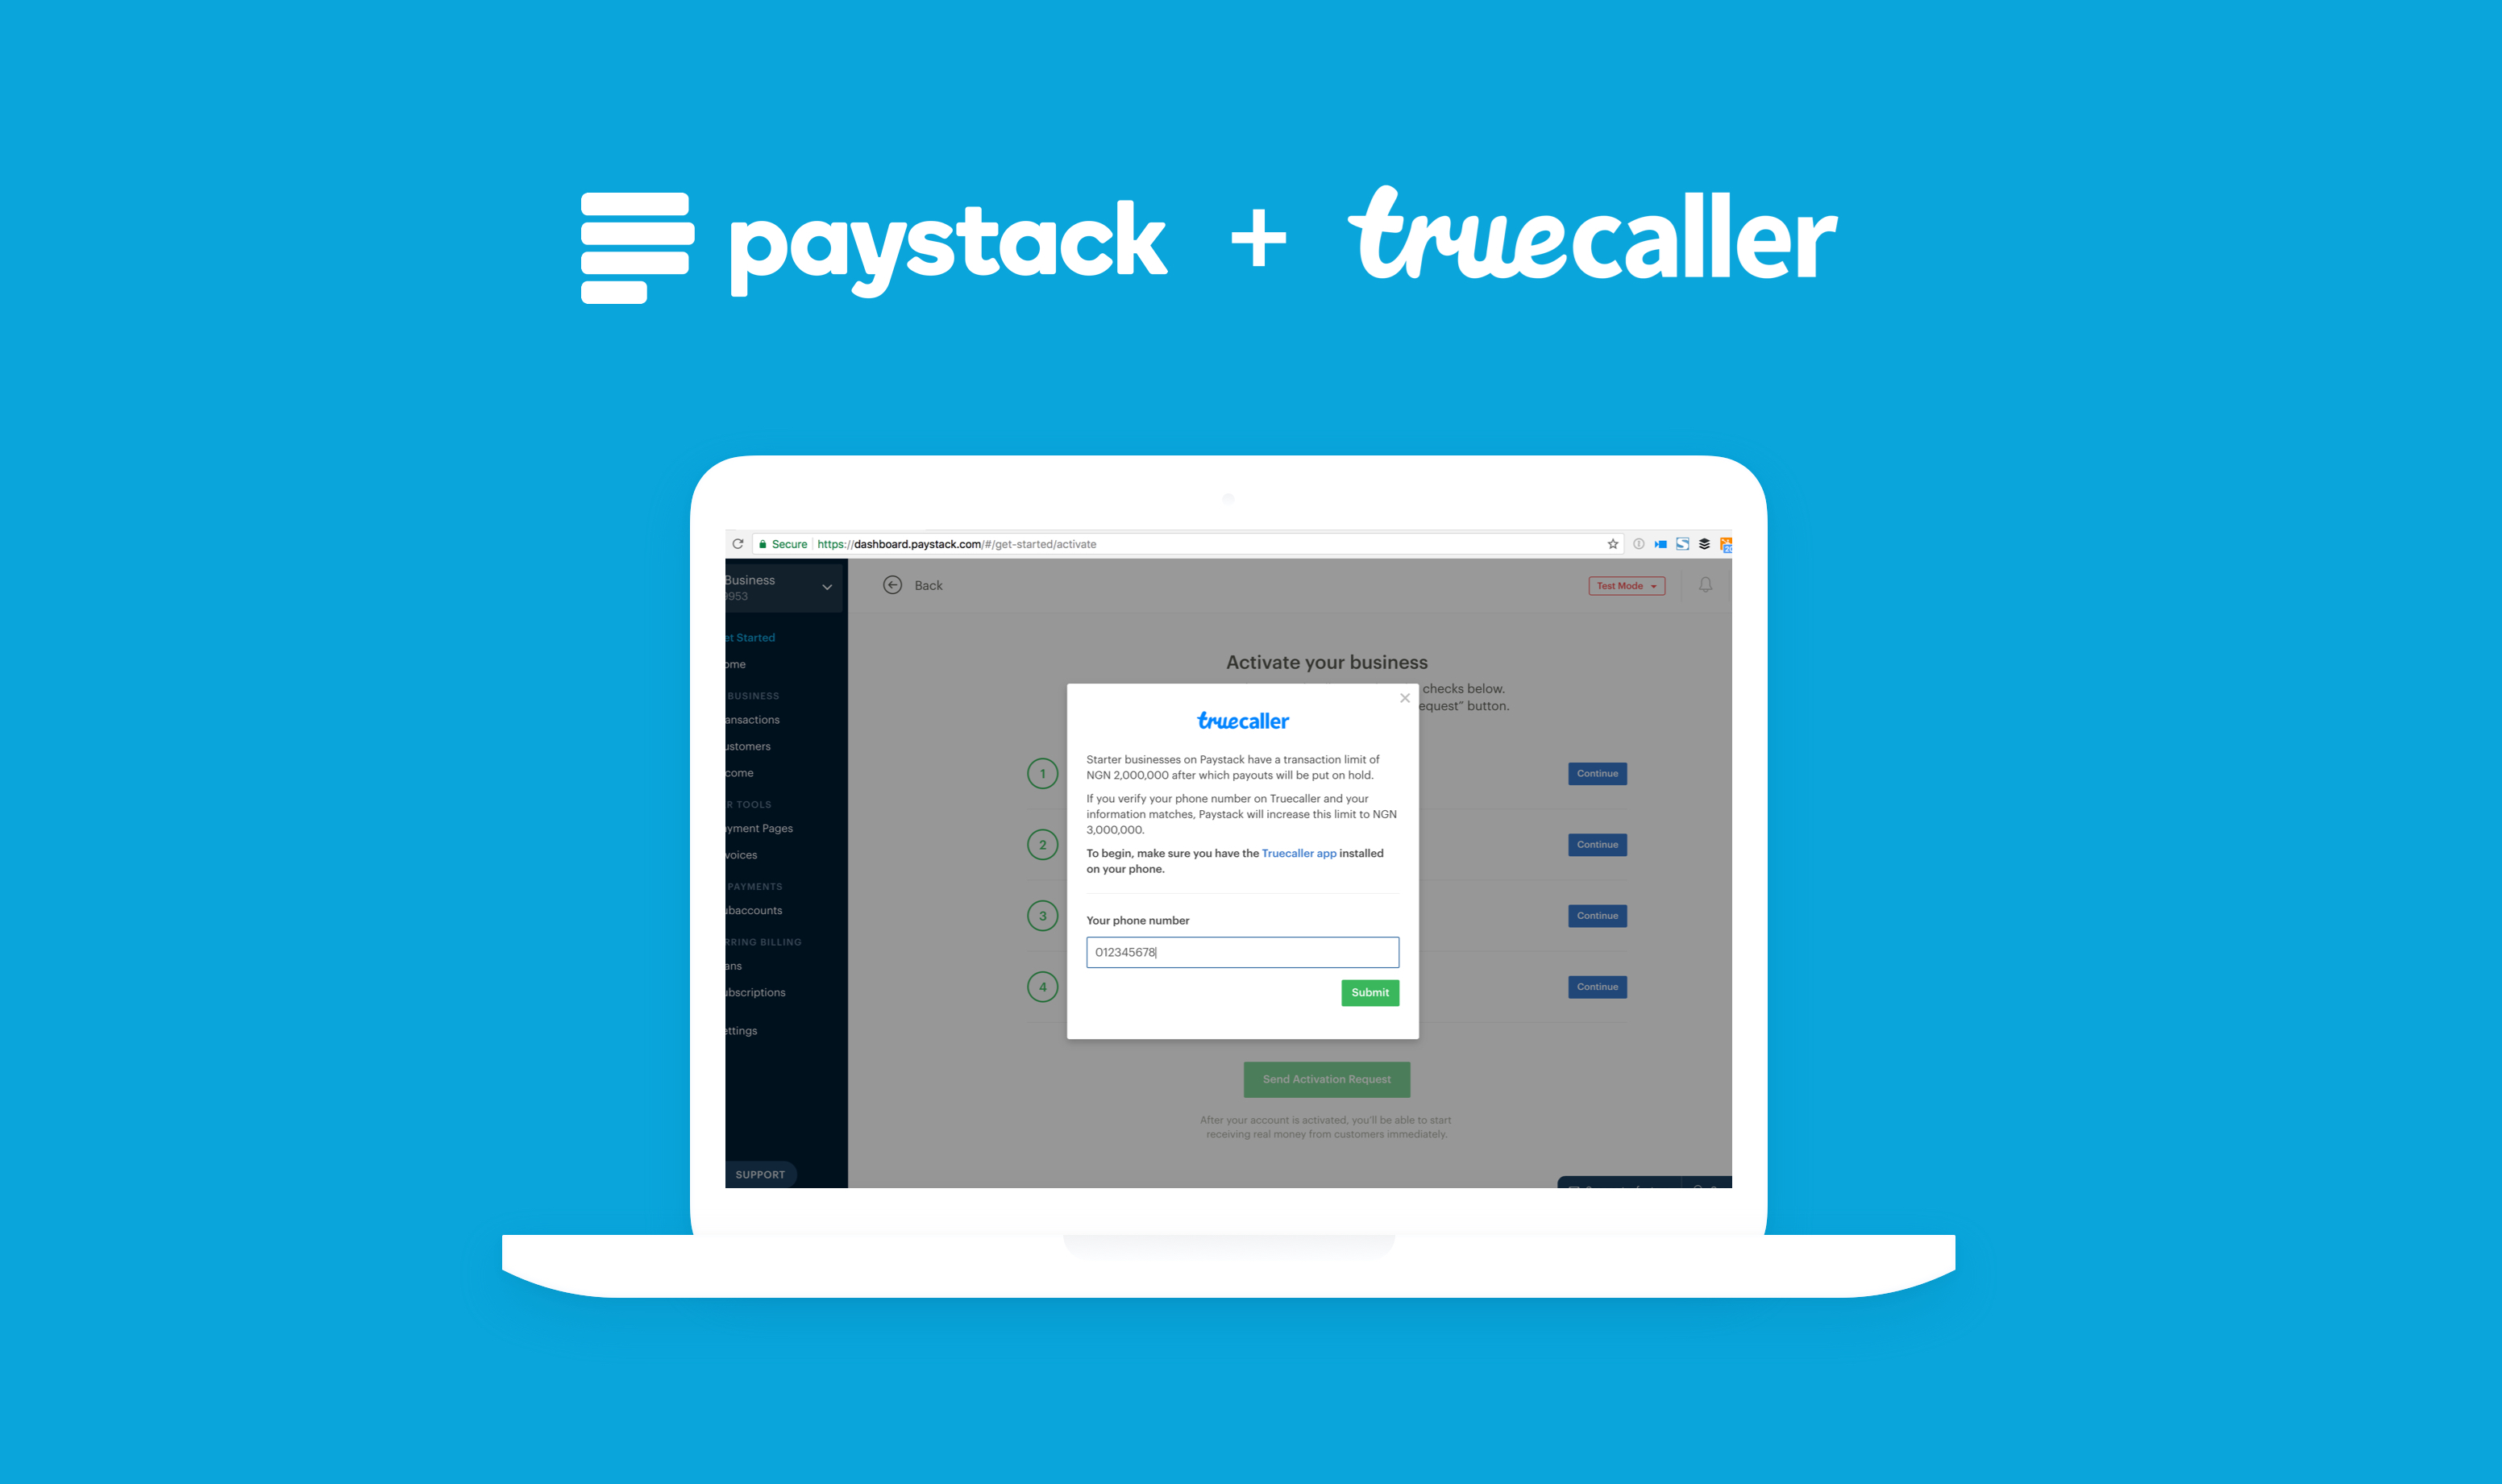 Paystack partners with Truecaller to enable more African